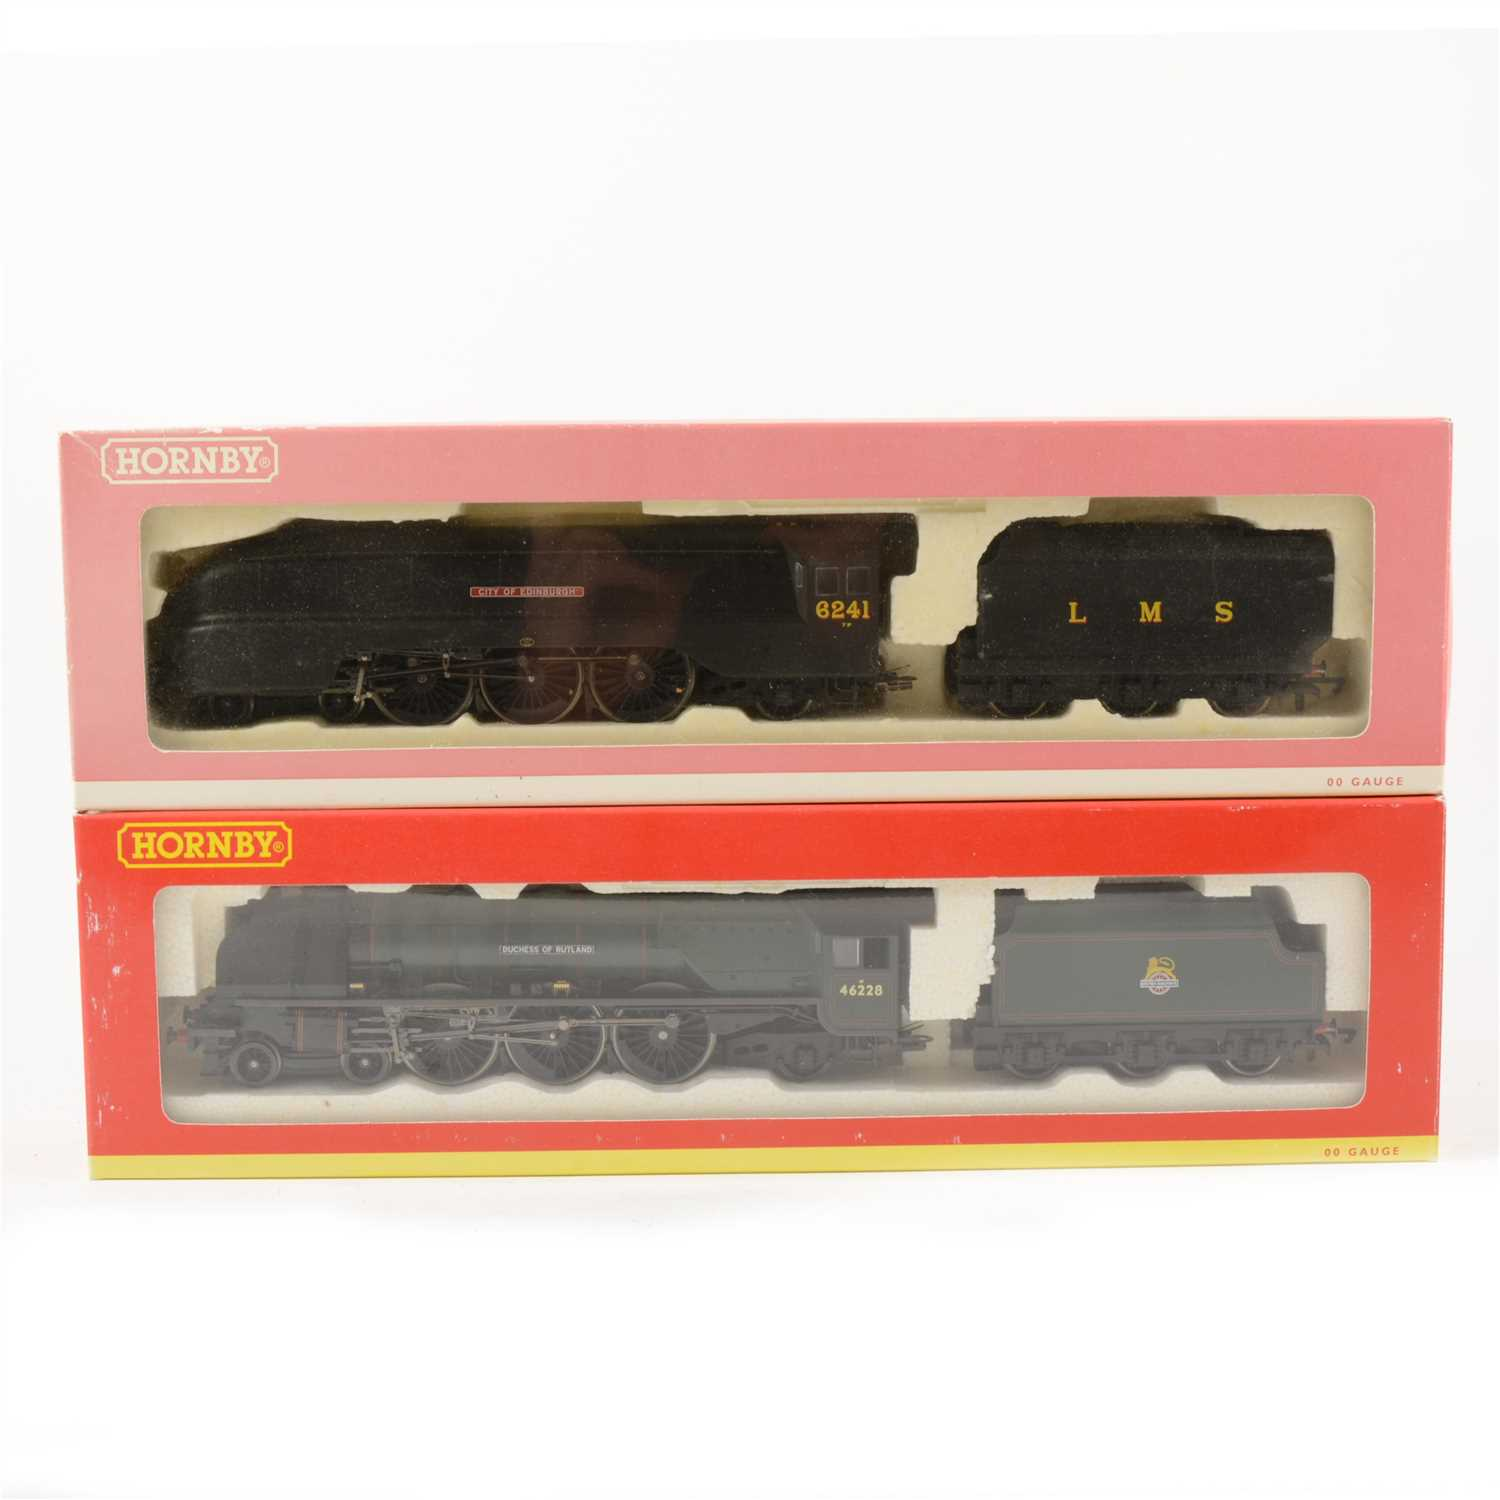 Lot 33-Two Hornby OO gauge model railway locomotives, including 'City of Edinburgh and 'Duchess of Rutland'